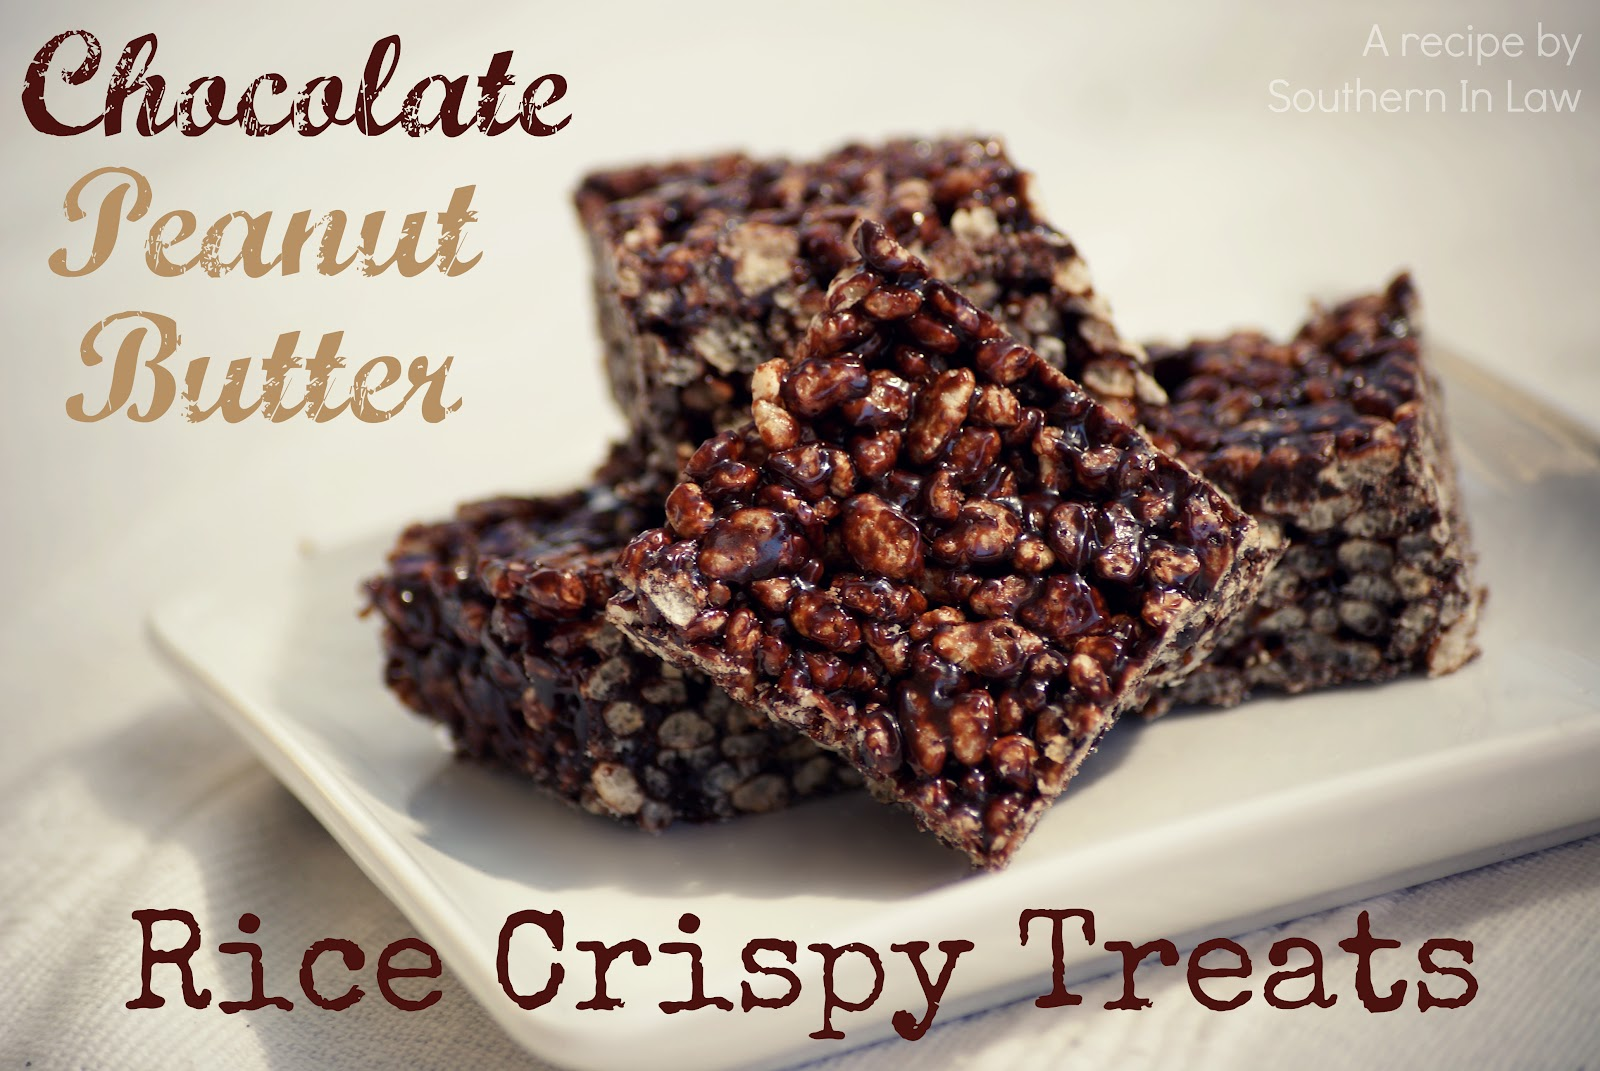 ... Lifestyle Blog: Recipe: Chocolate Peanut Butter Rice Crispy Treats